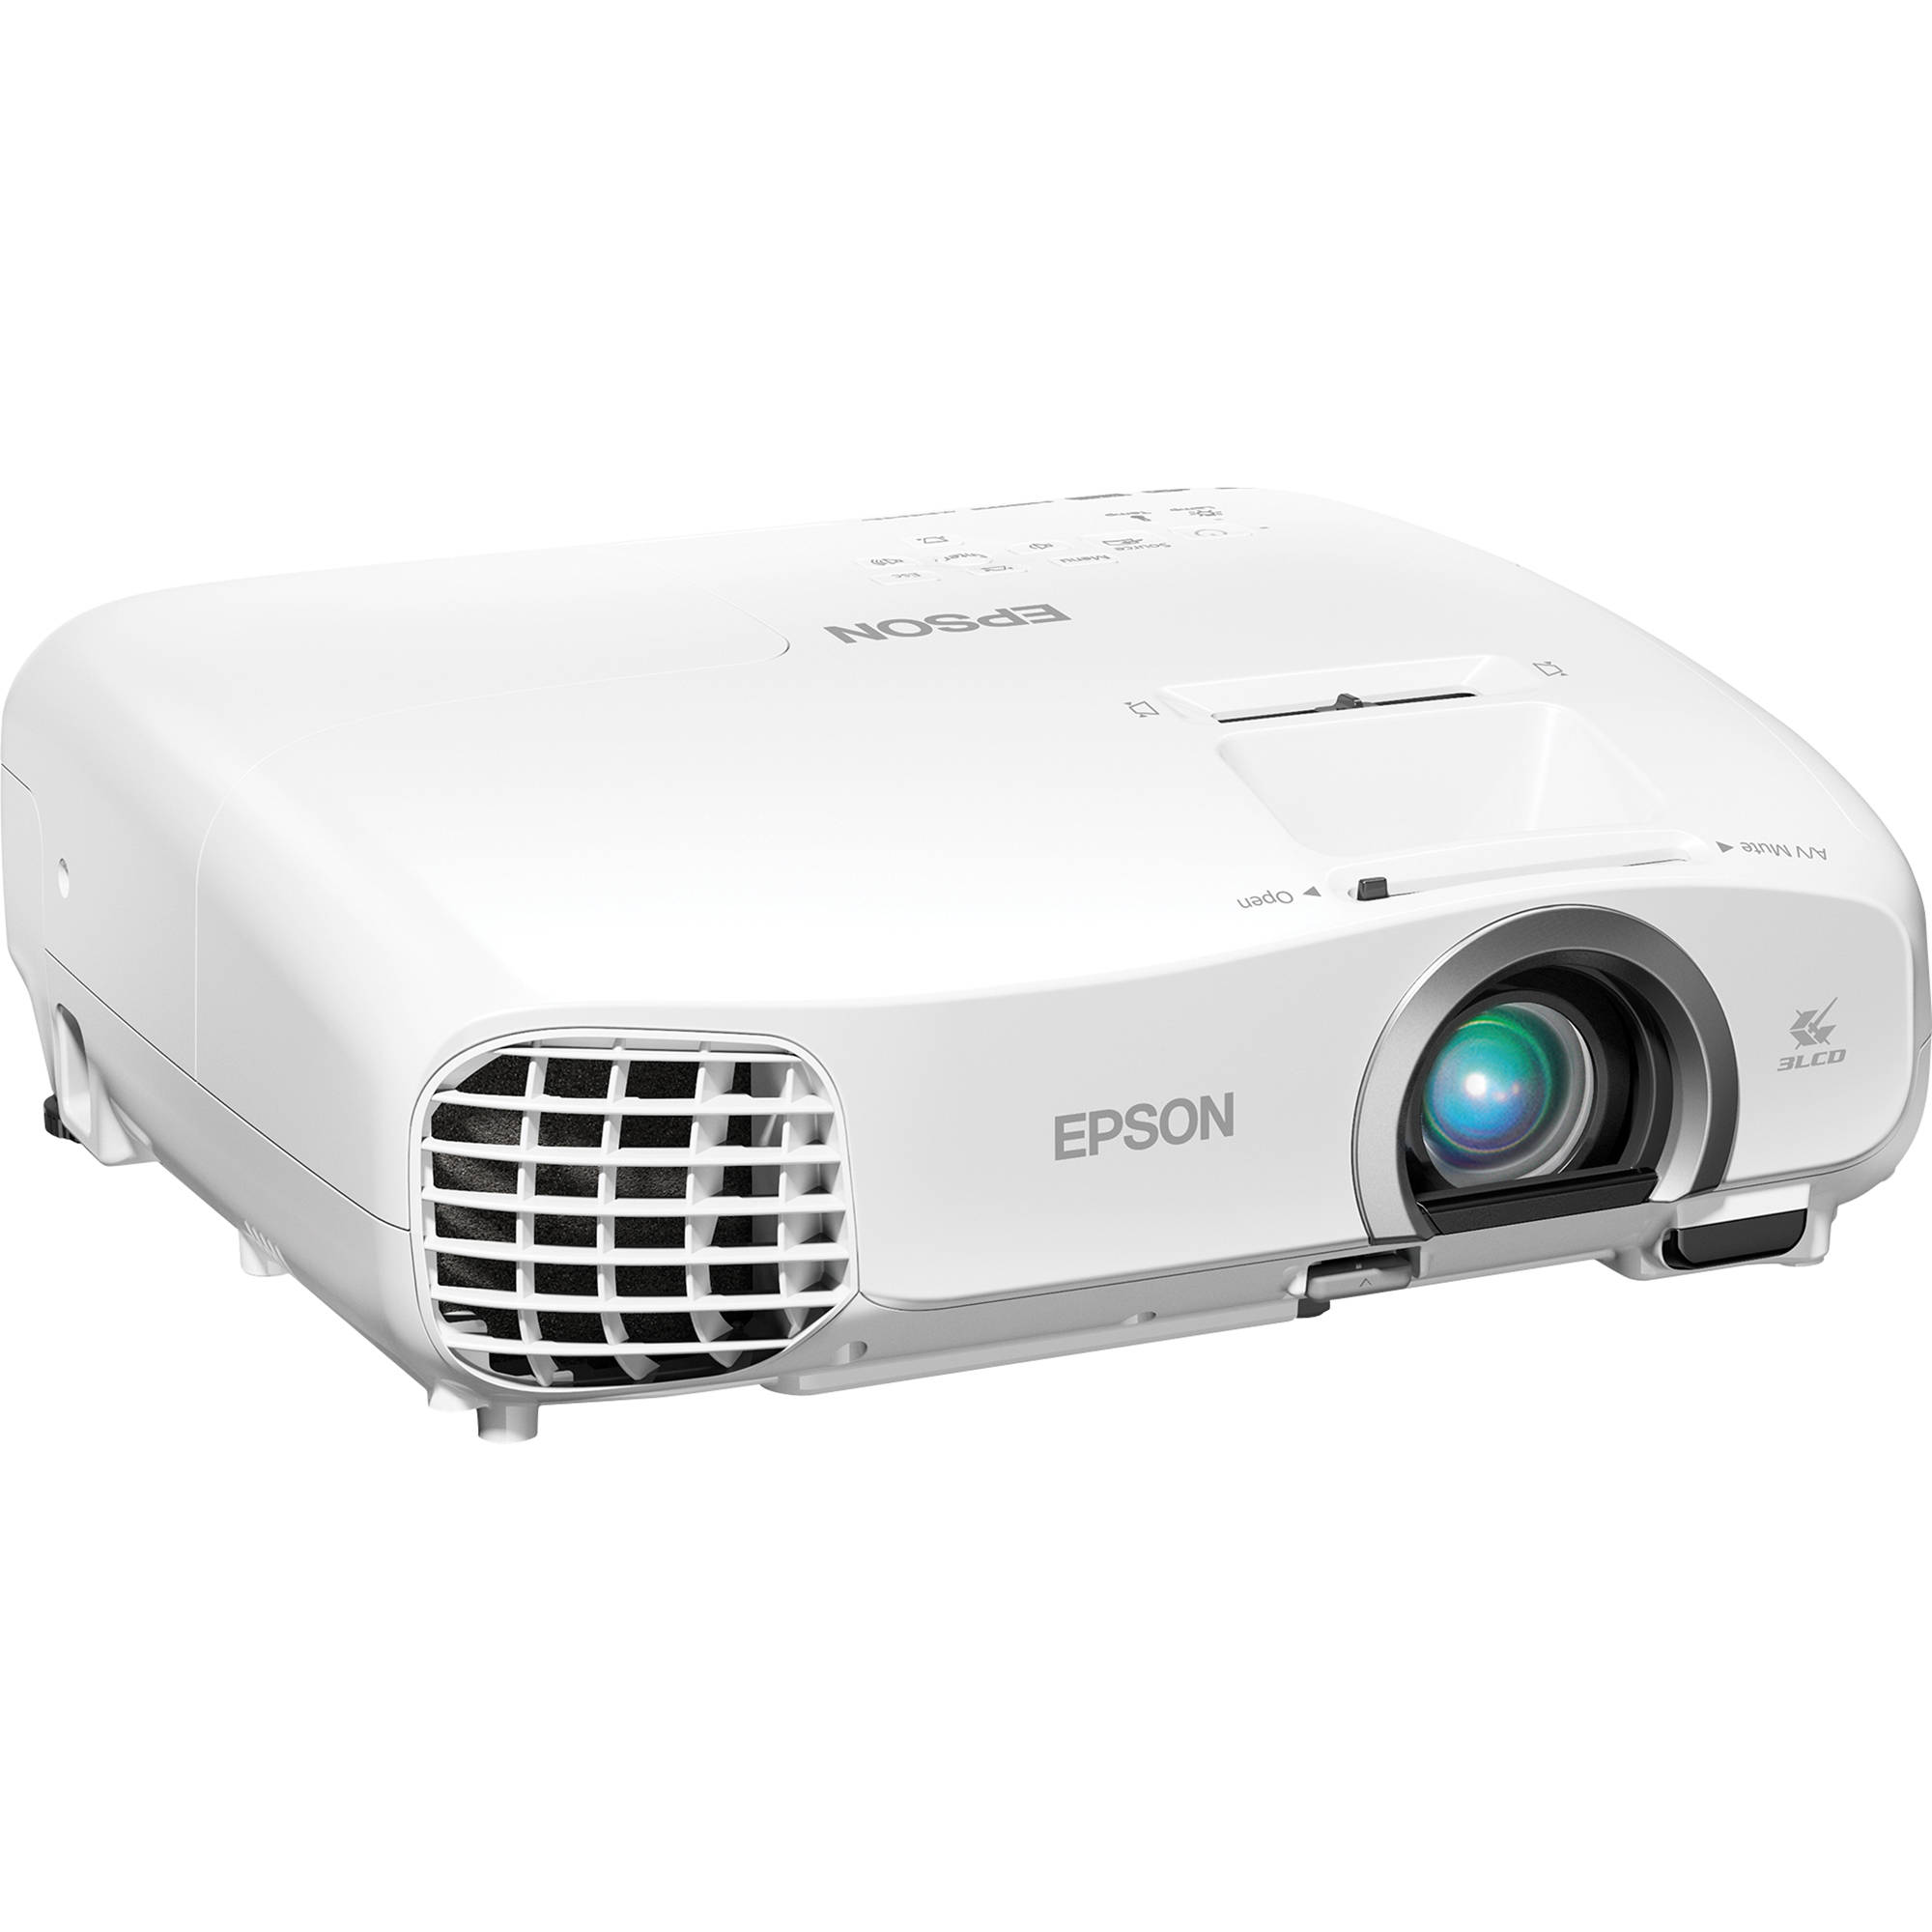 Epson powerlite home cinema 2030 2d 3d 1080p 3lcd for Best small hd projector